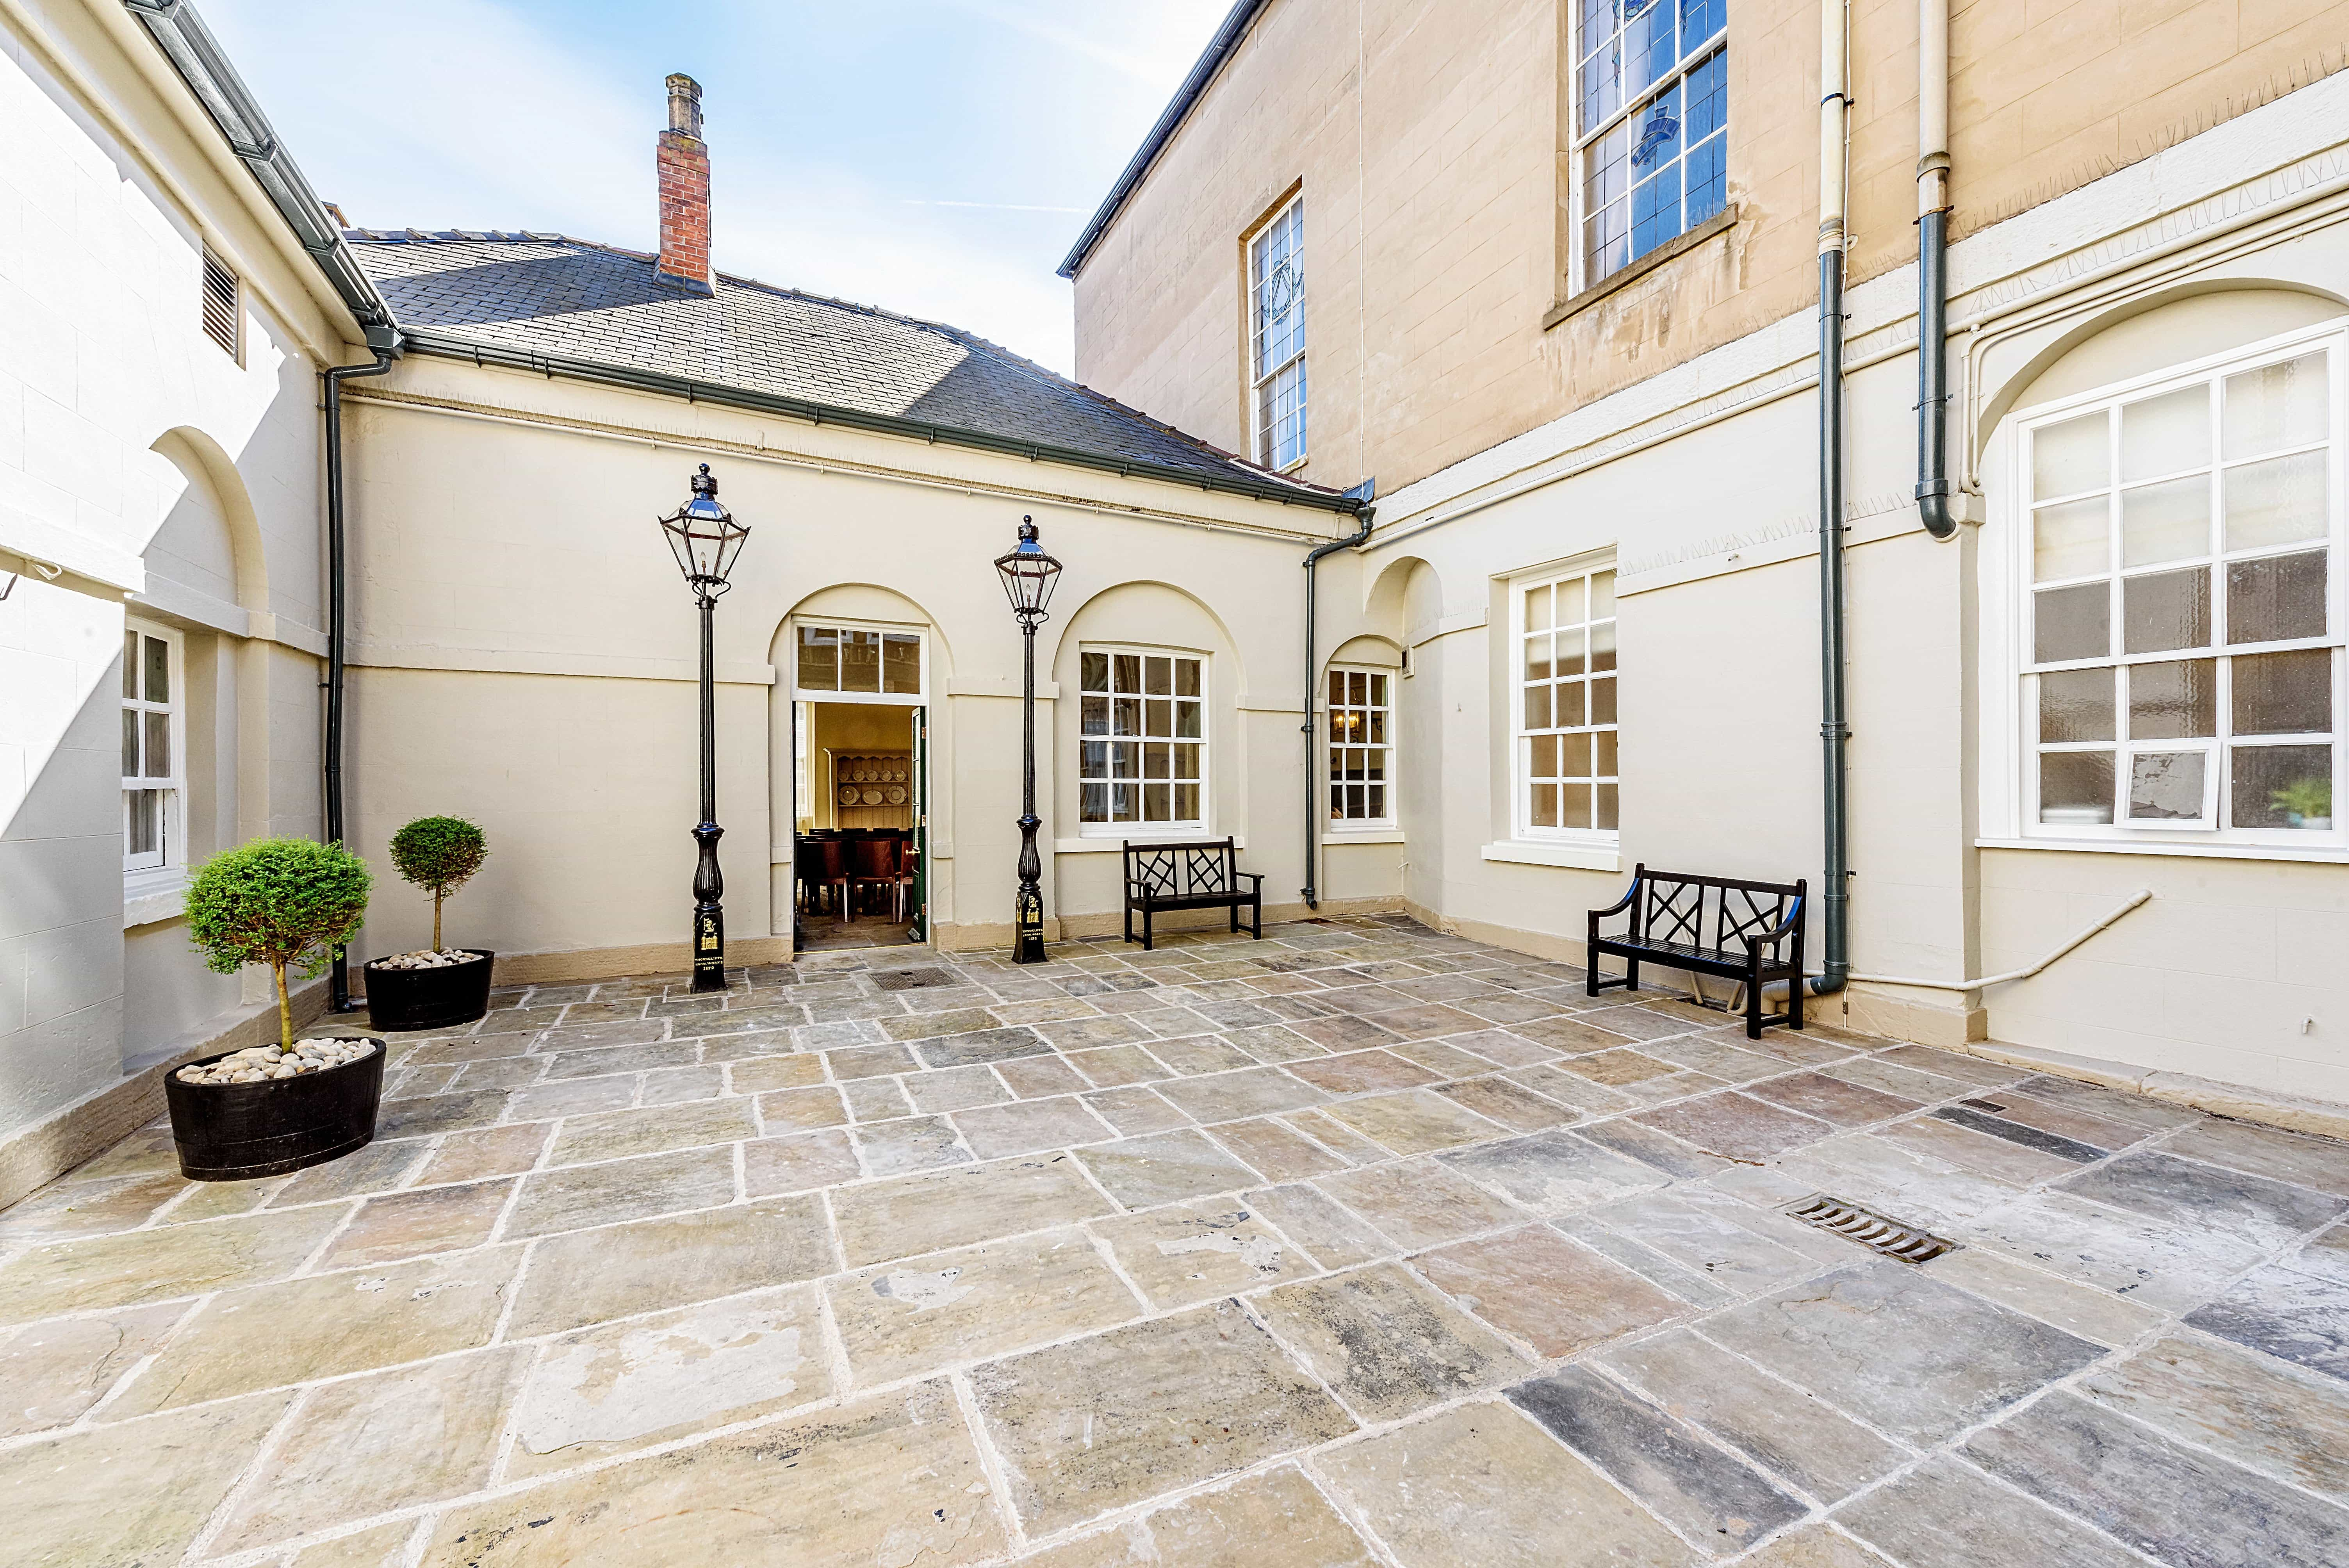 outdoor area at the doncaster mansion house